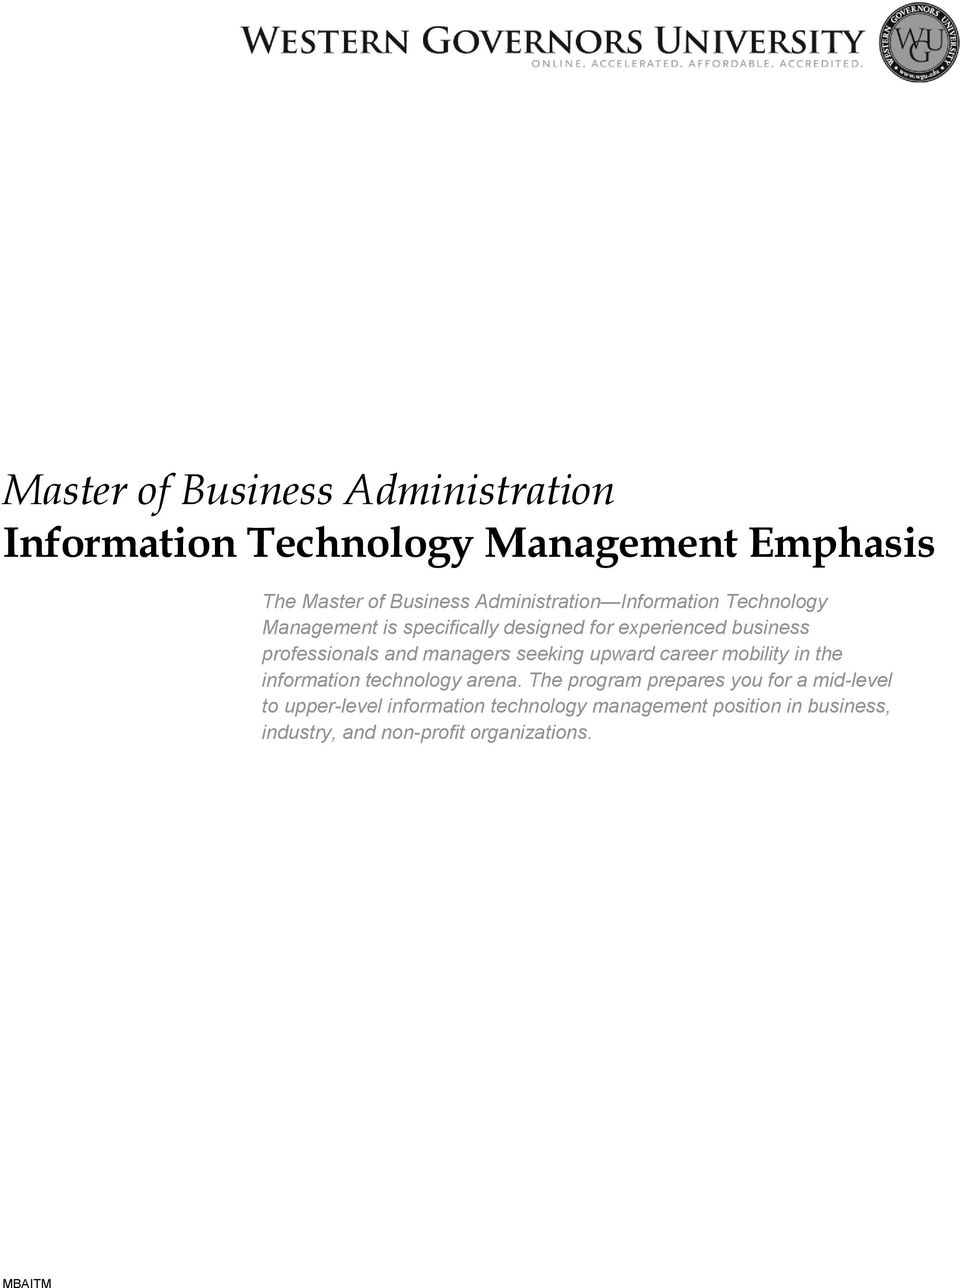 Master of Business Administration Information Technology